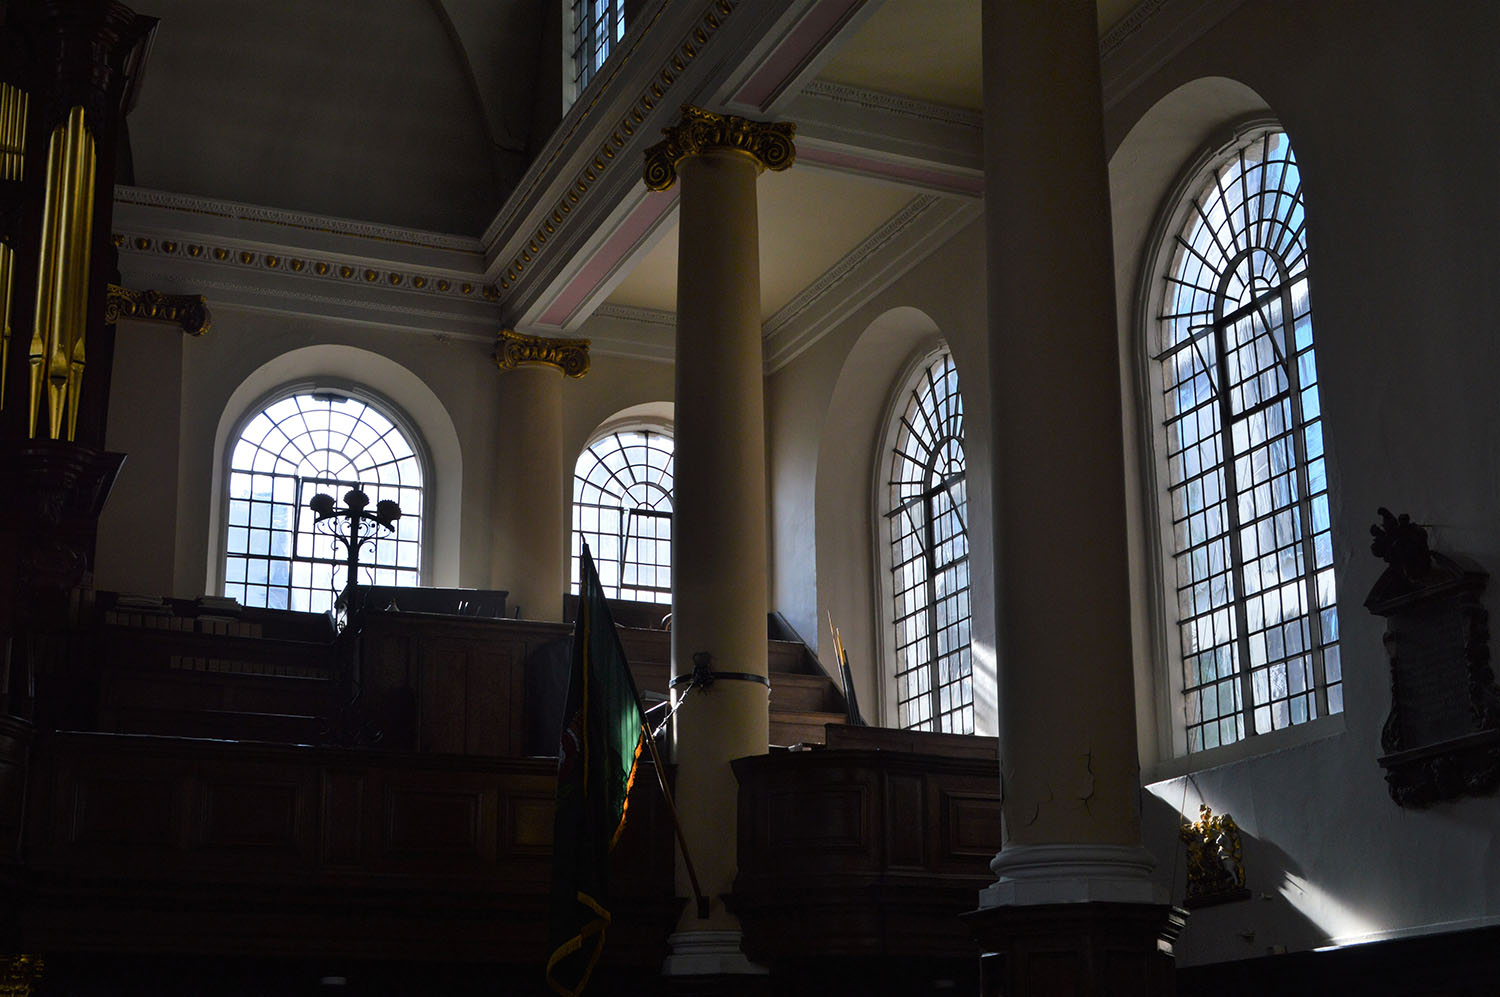 Interior of church with windows and pillars